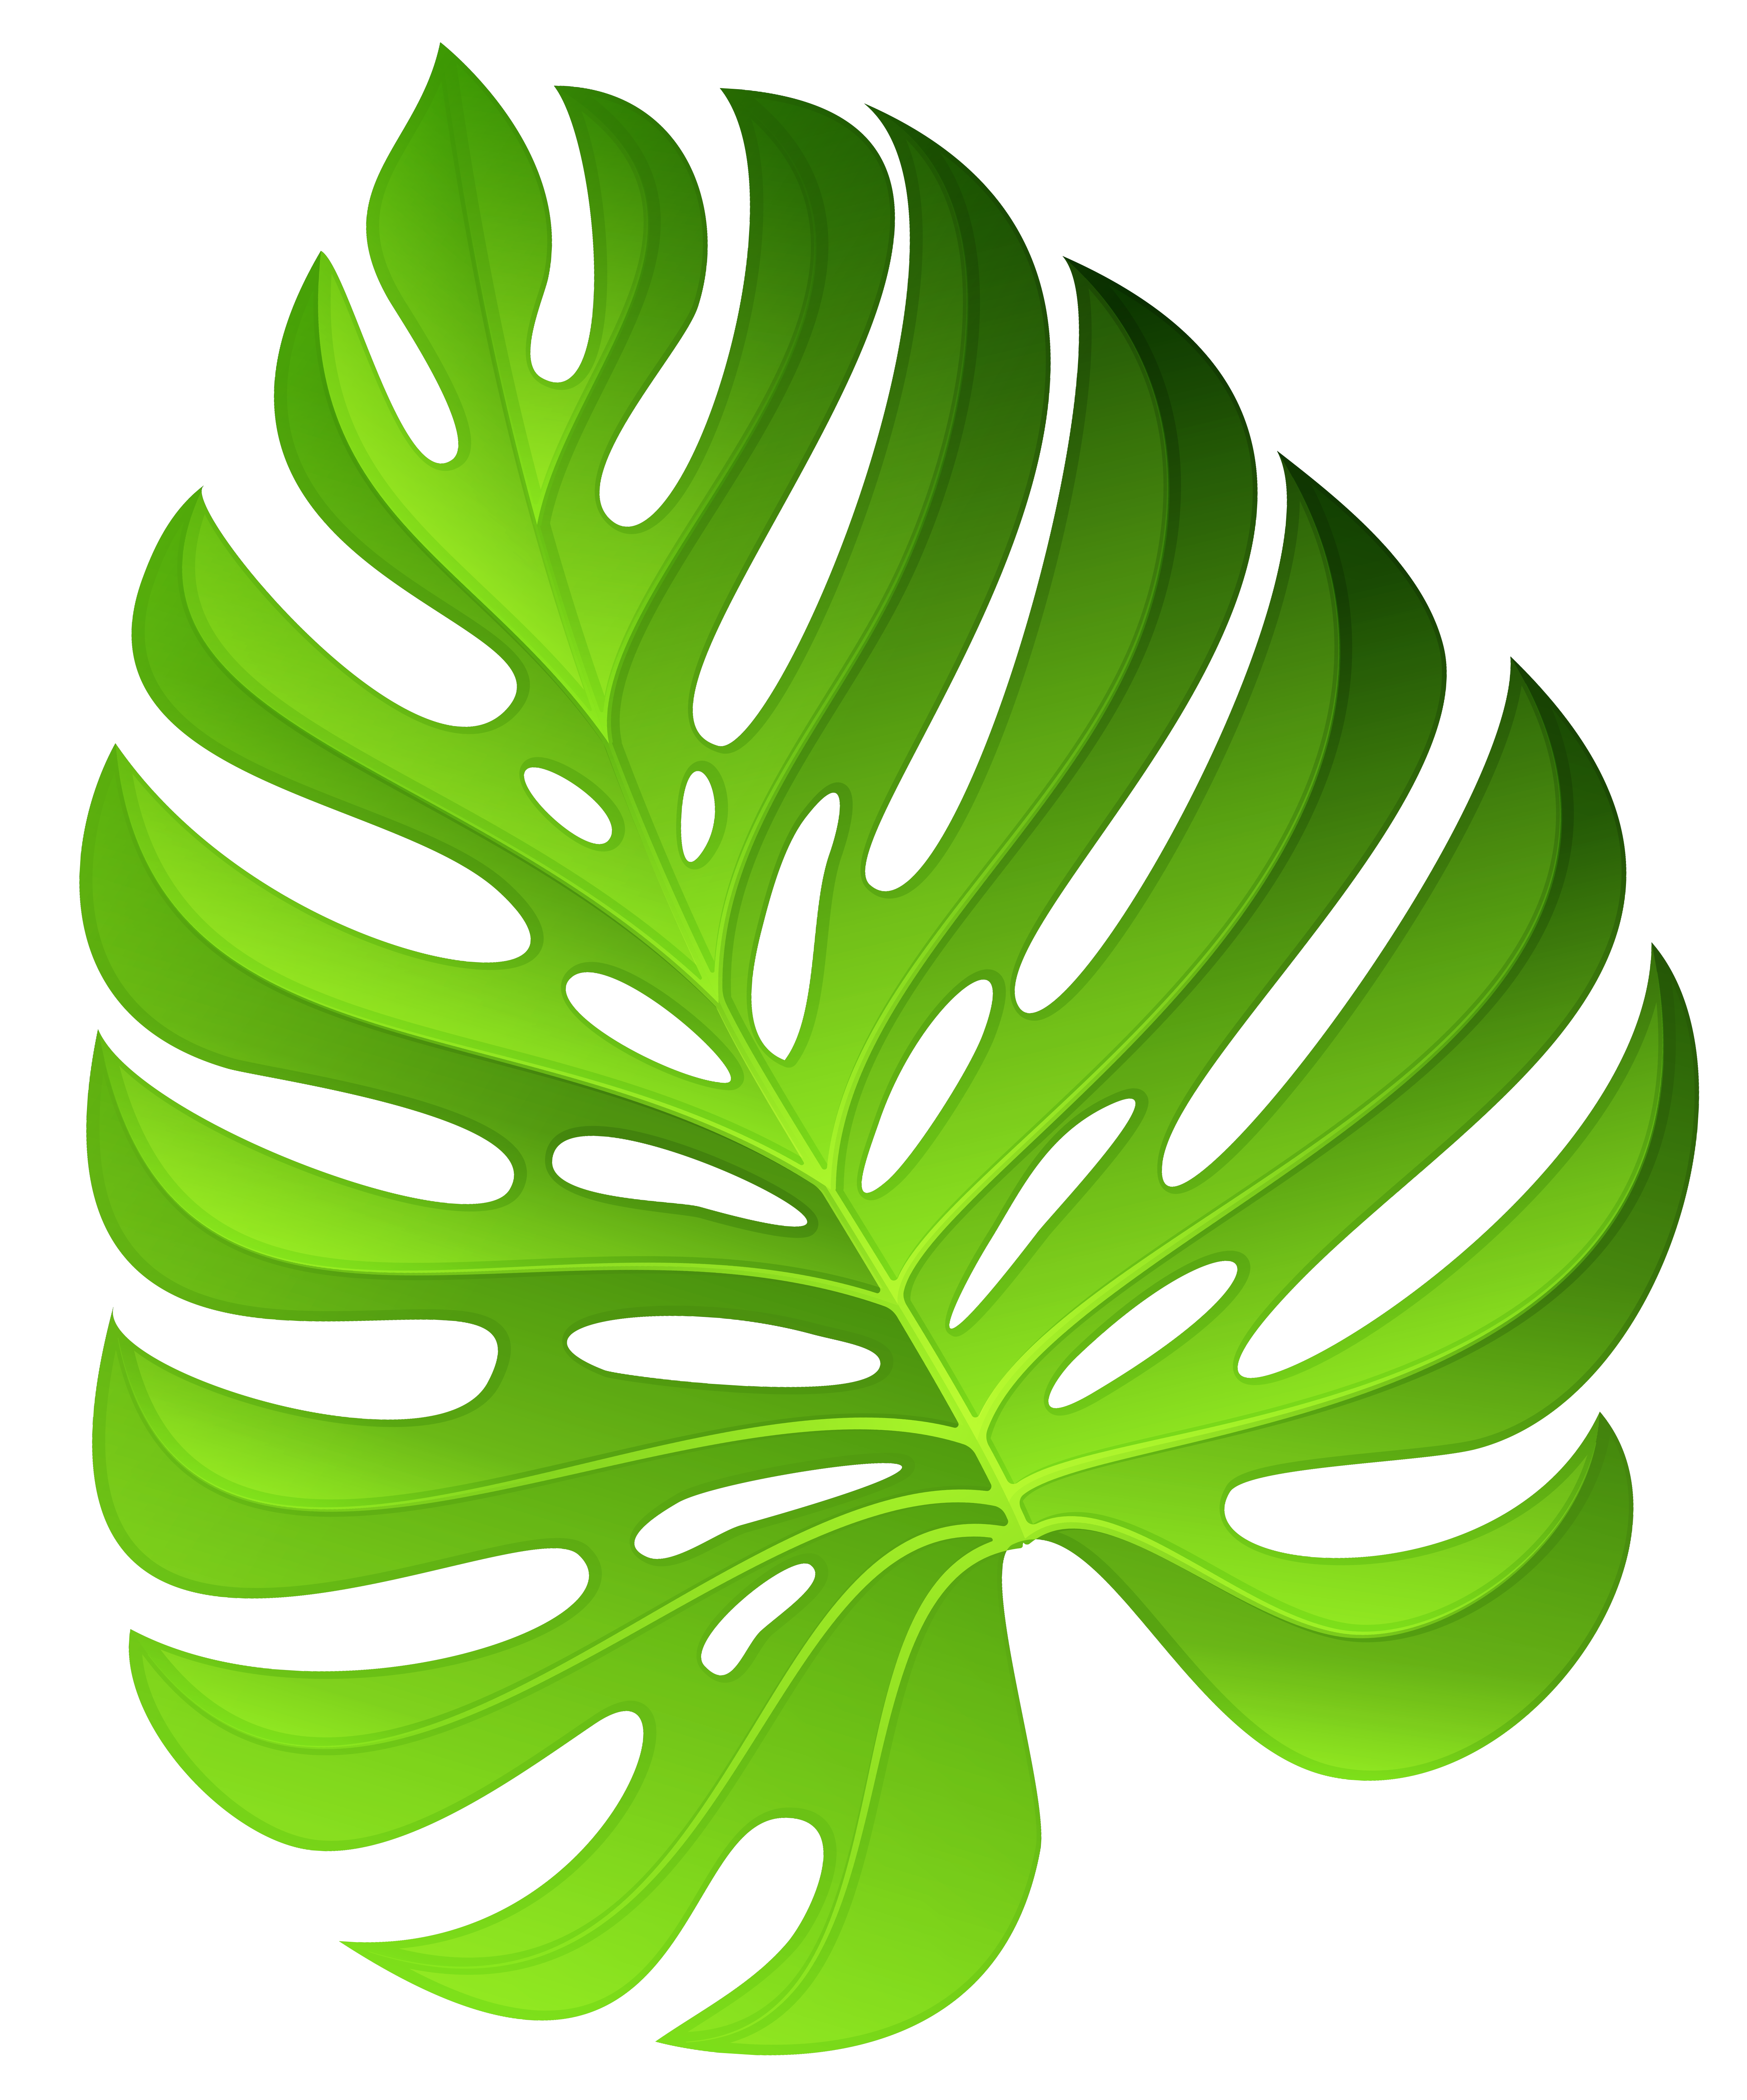 Plant clipart. At getdrawings com free